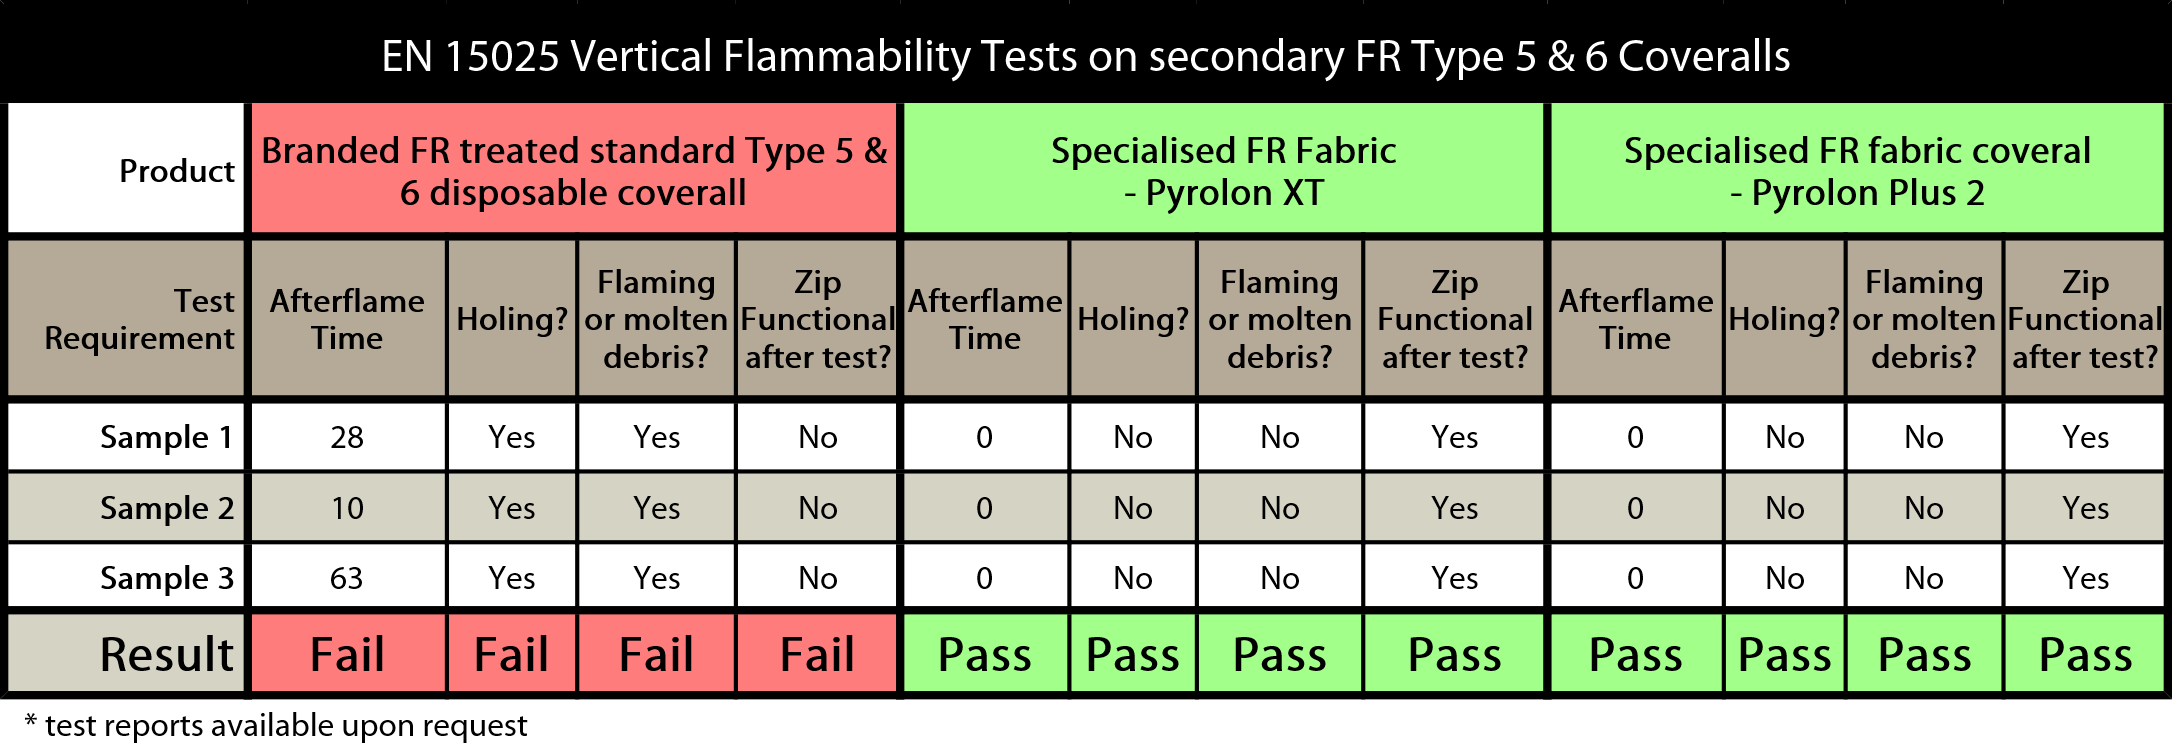 Summary of 15025 testing on various secondary FR Type 5 & 6 coveralls - Secondary FR Disposable Coveralls and the effect of the new EN 14116 Standard